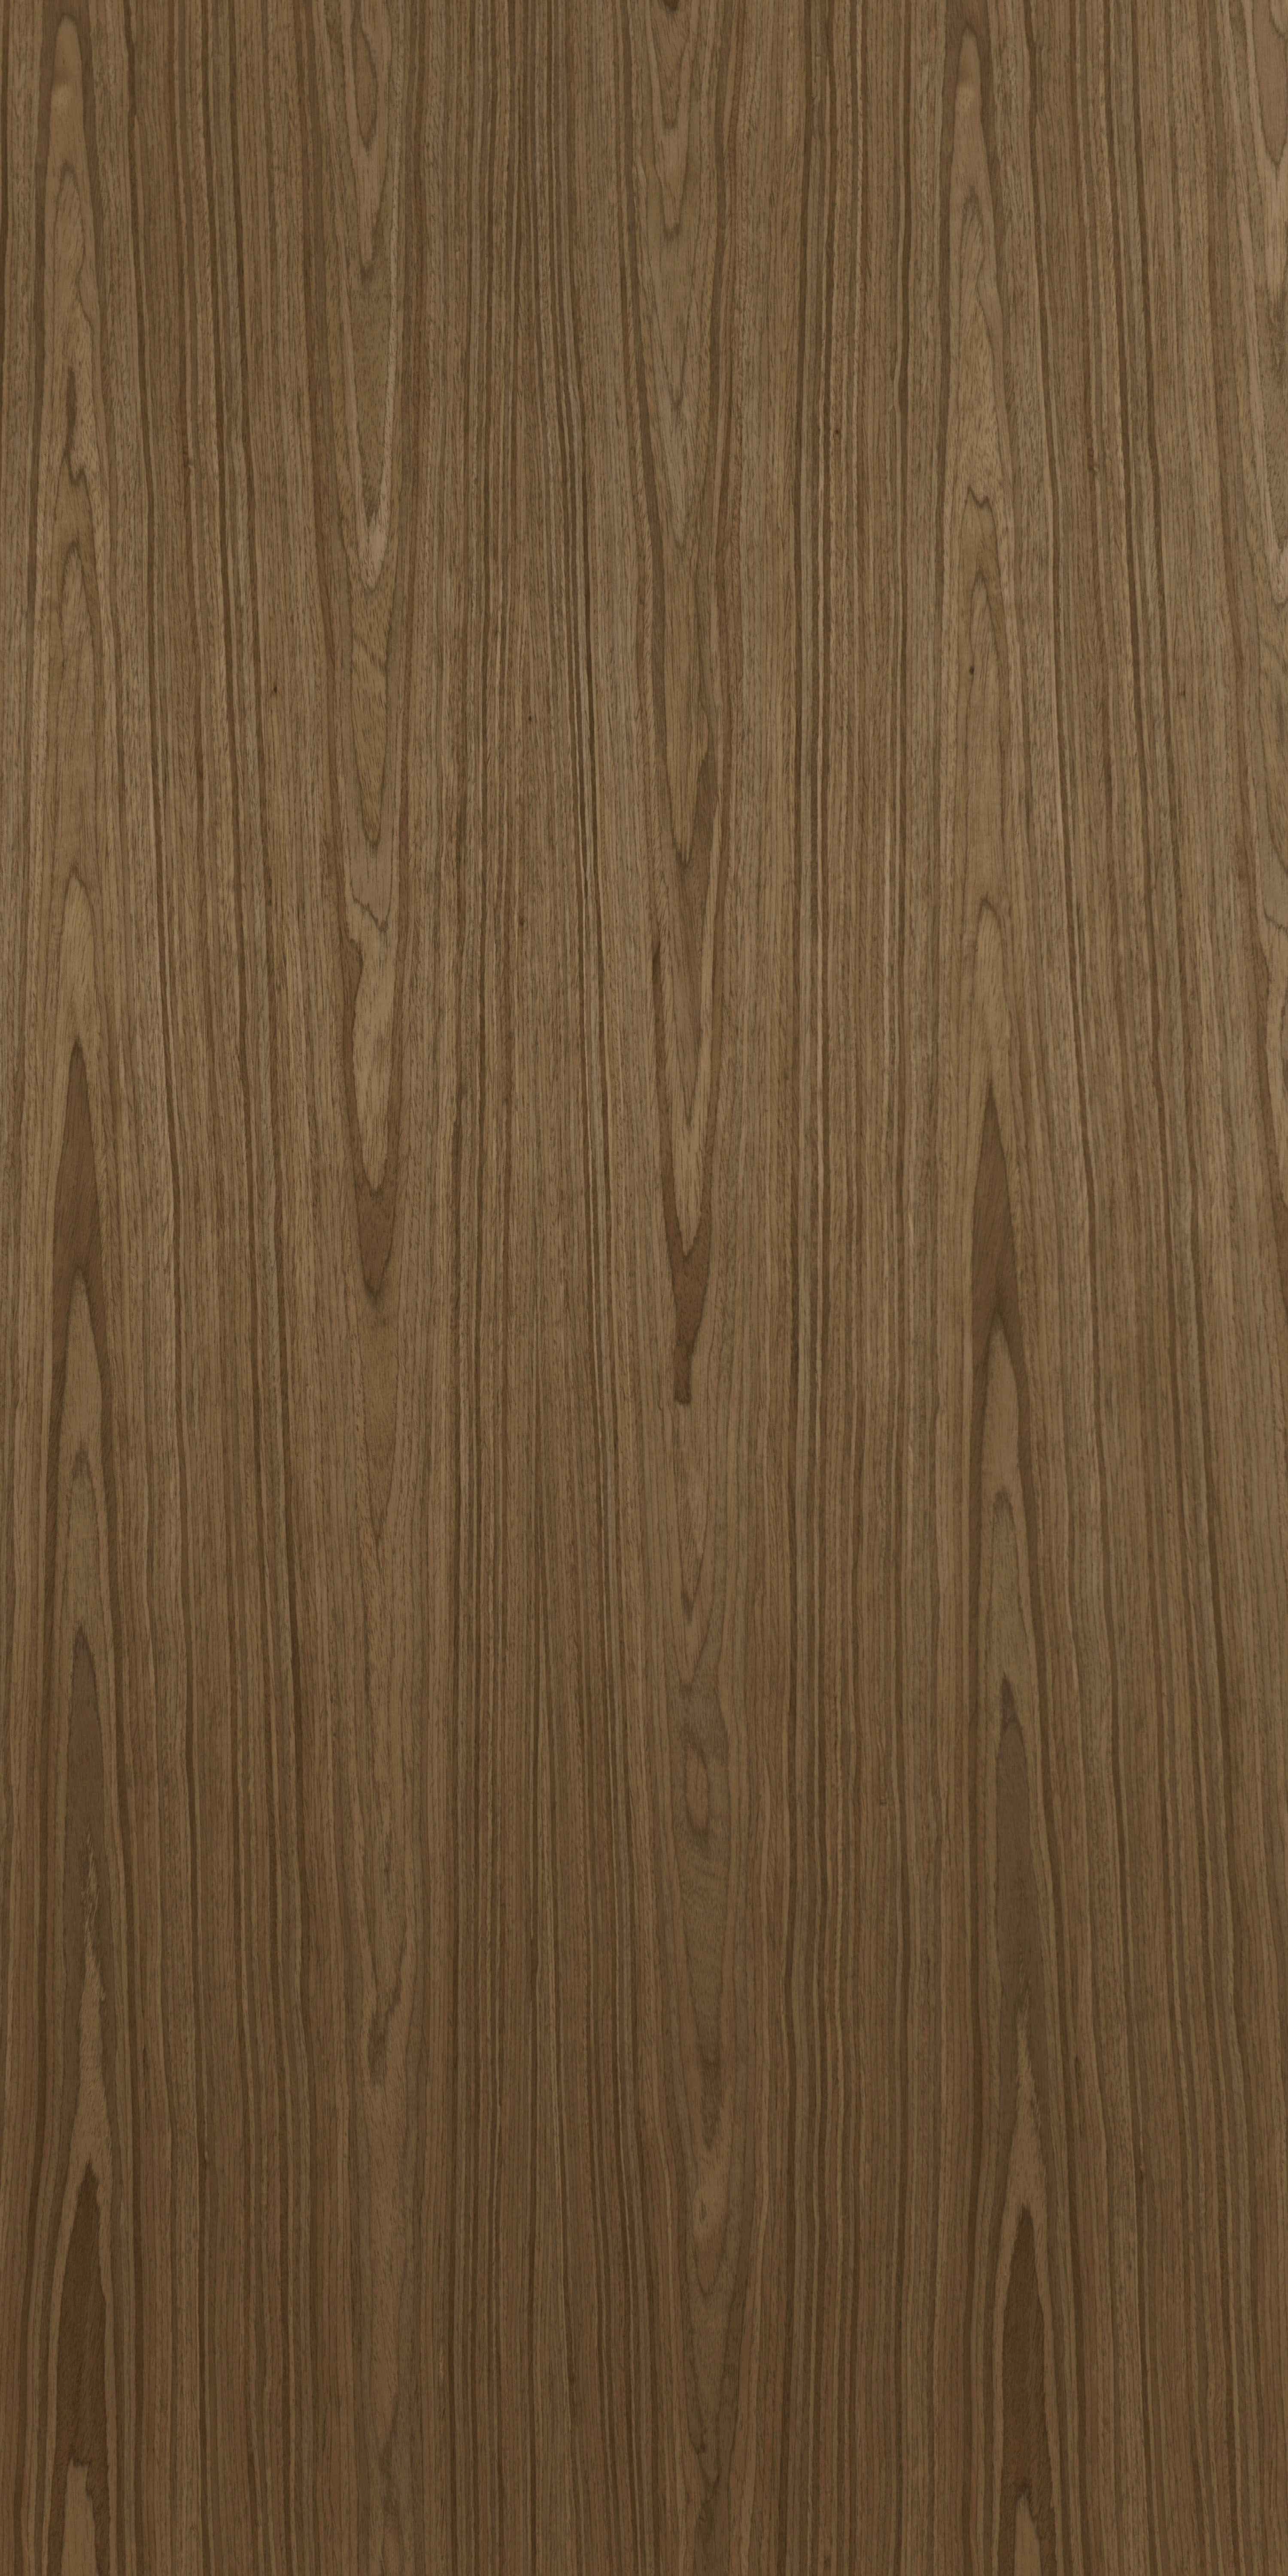 231 Recon African Walnut Veneer Plywood, Billiona Enterprise Singapore